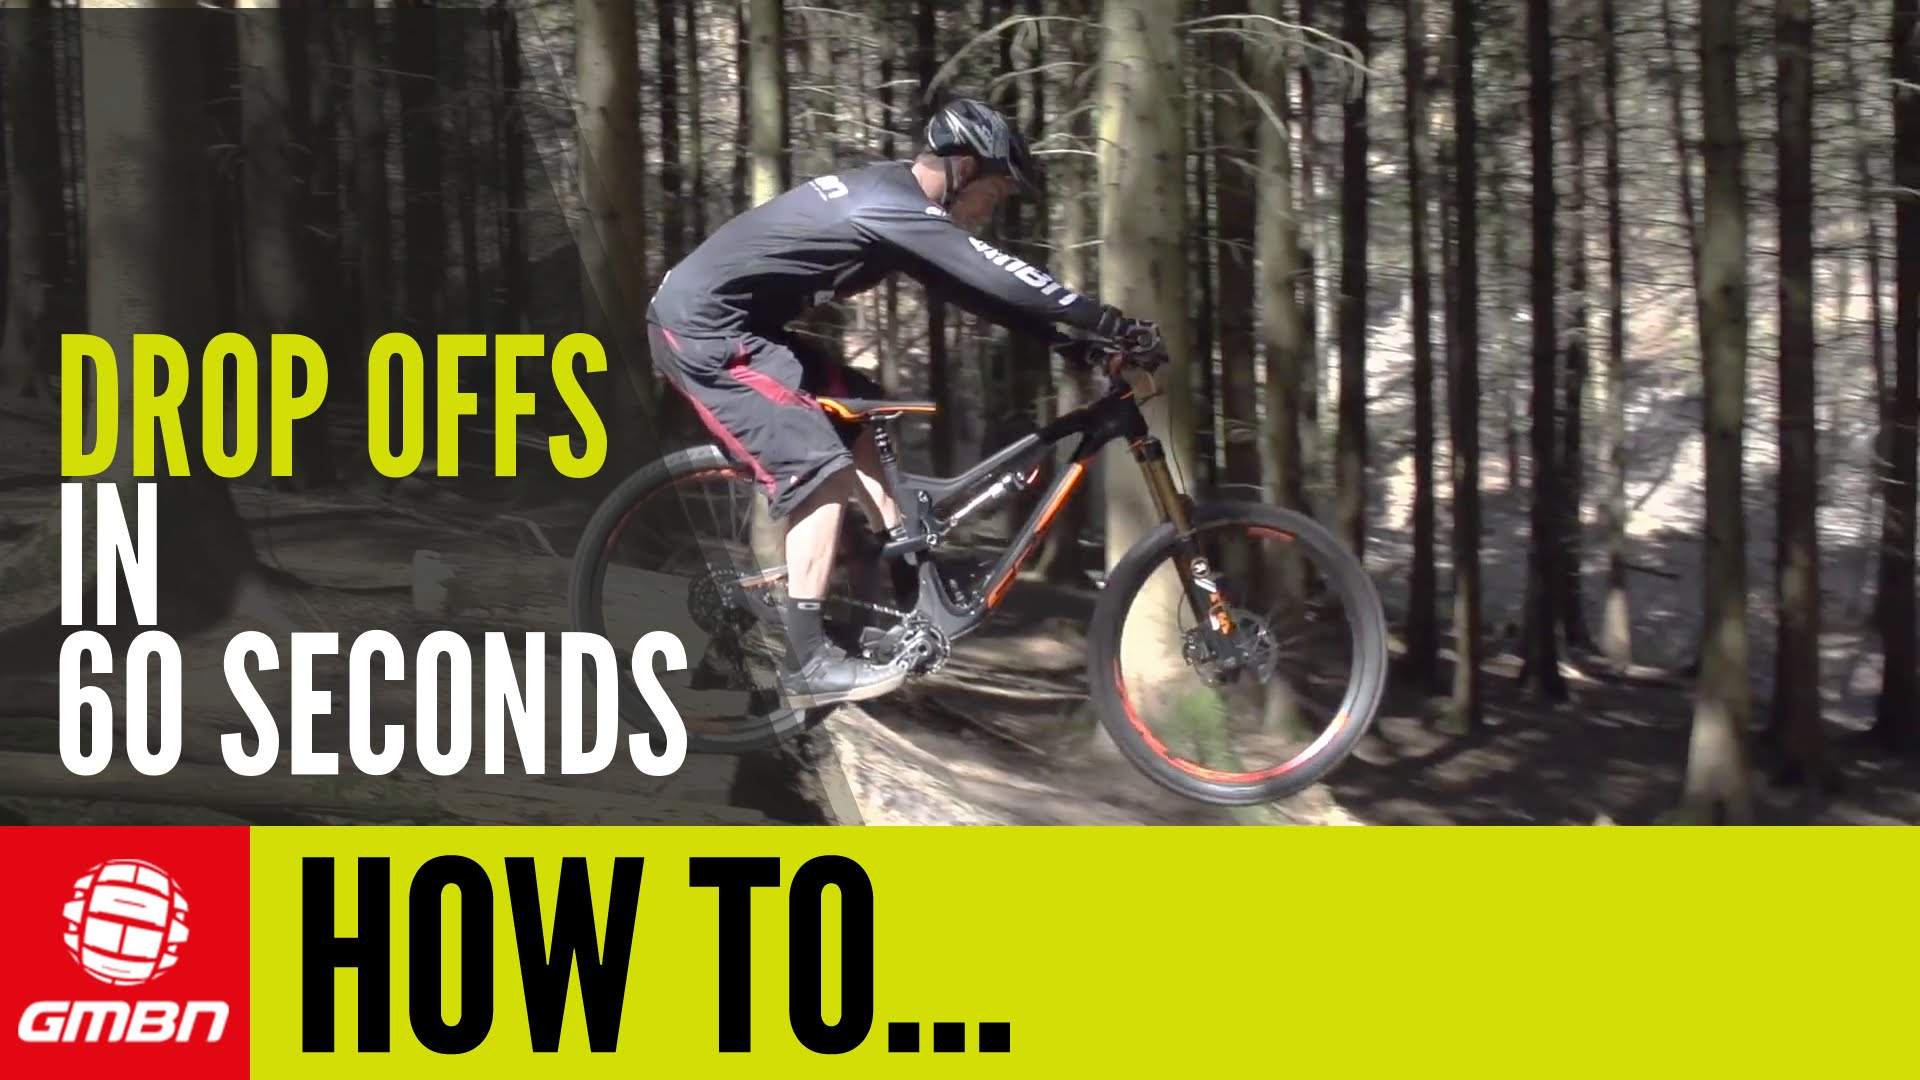 Learn How To Ride Drop Offs In (Nearly) 60 Seconds